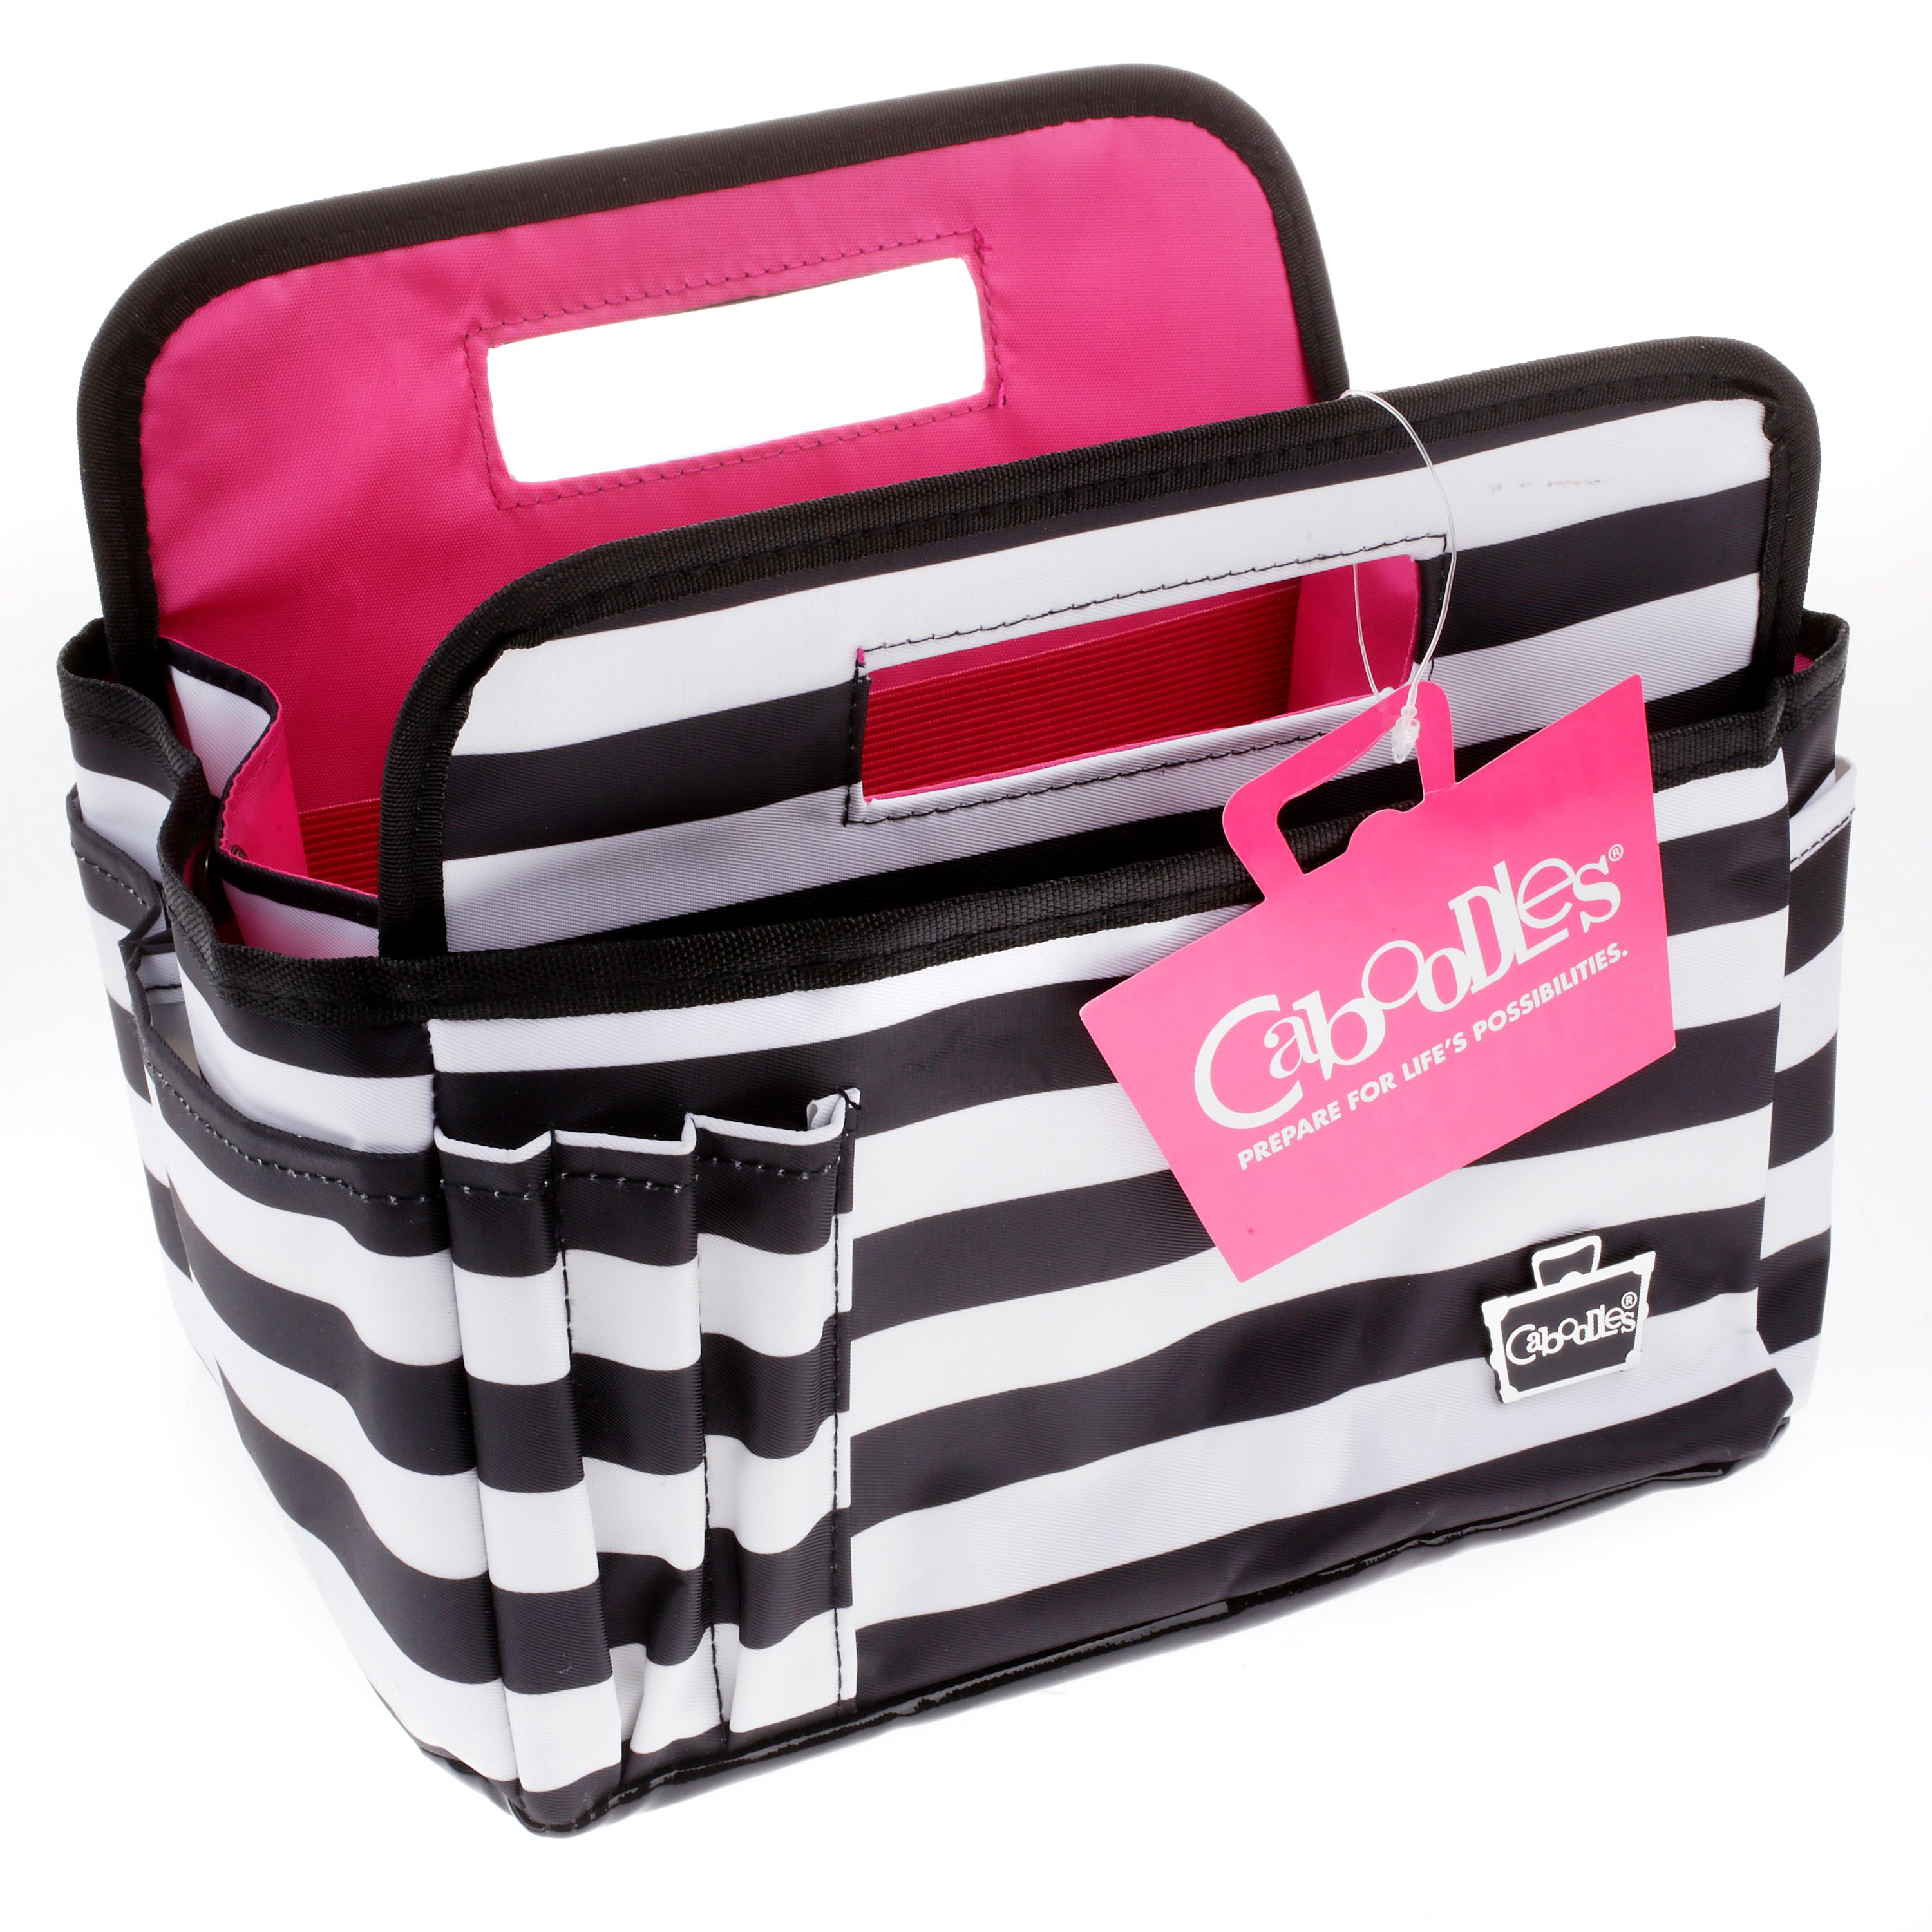 Caboodles Super Cute Large Makeup Caddy (Color May Vary)